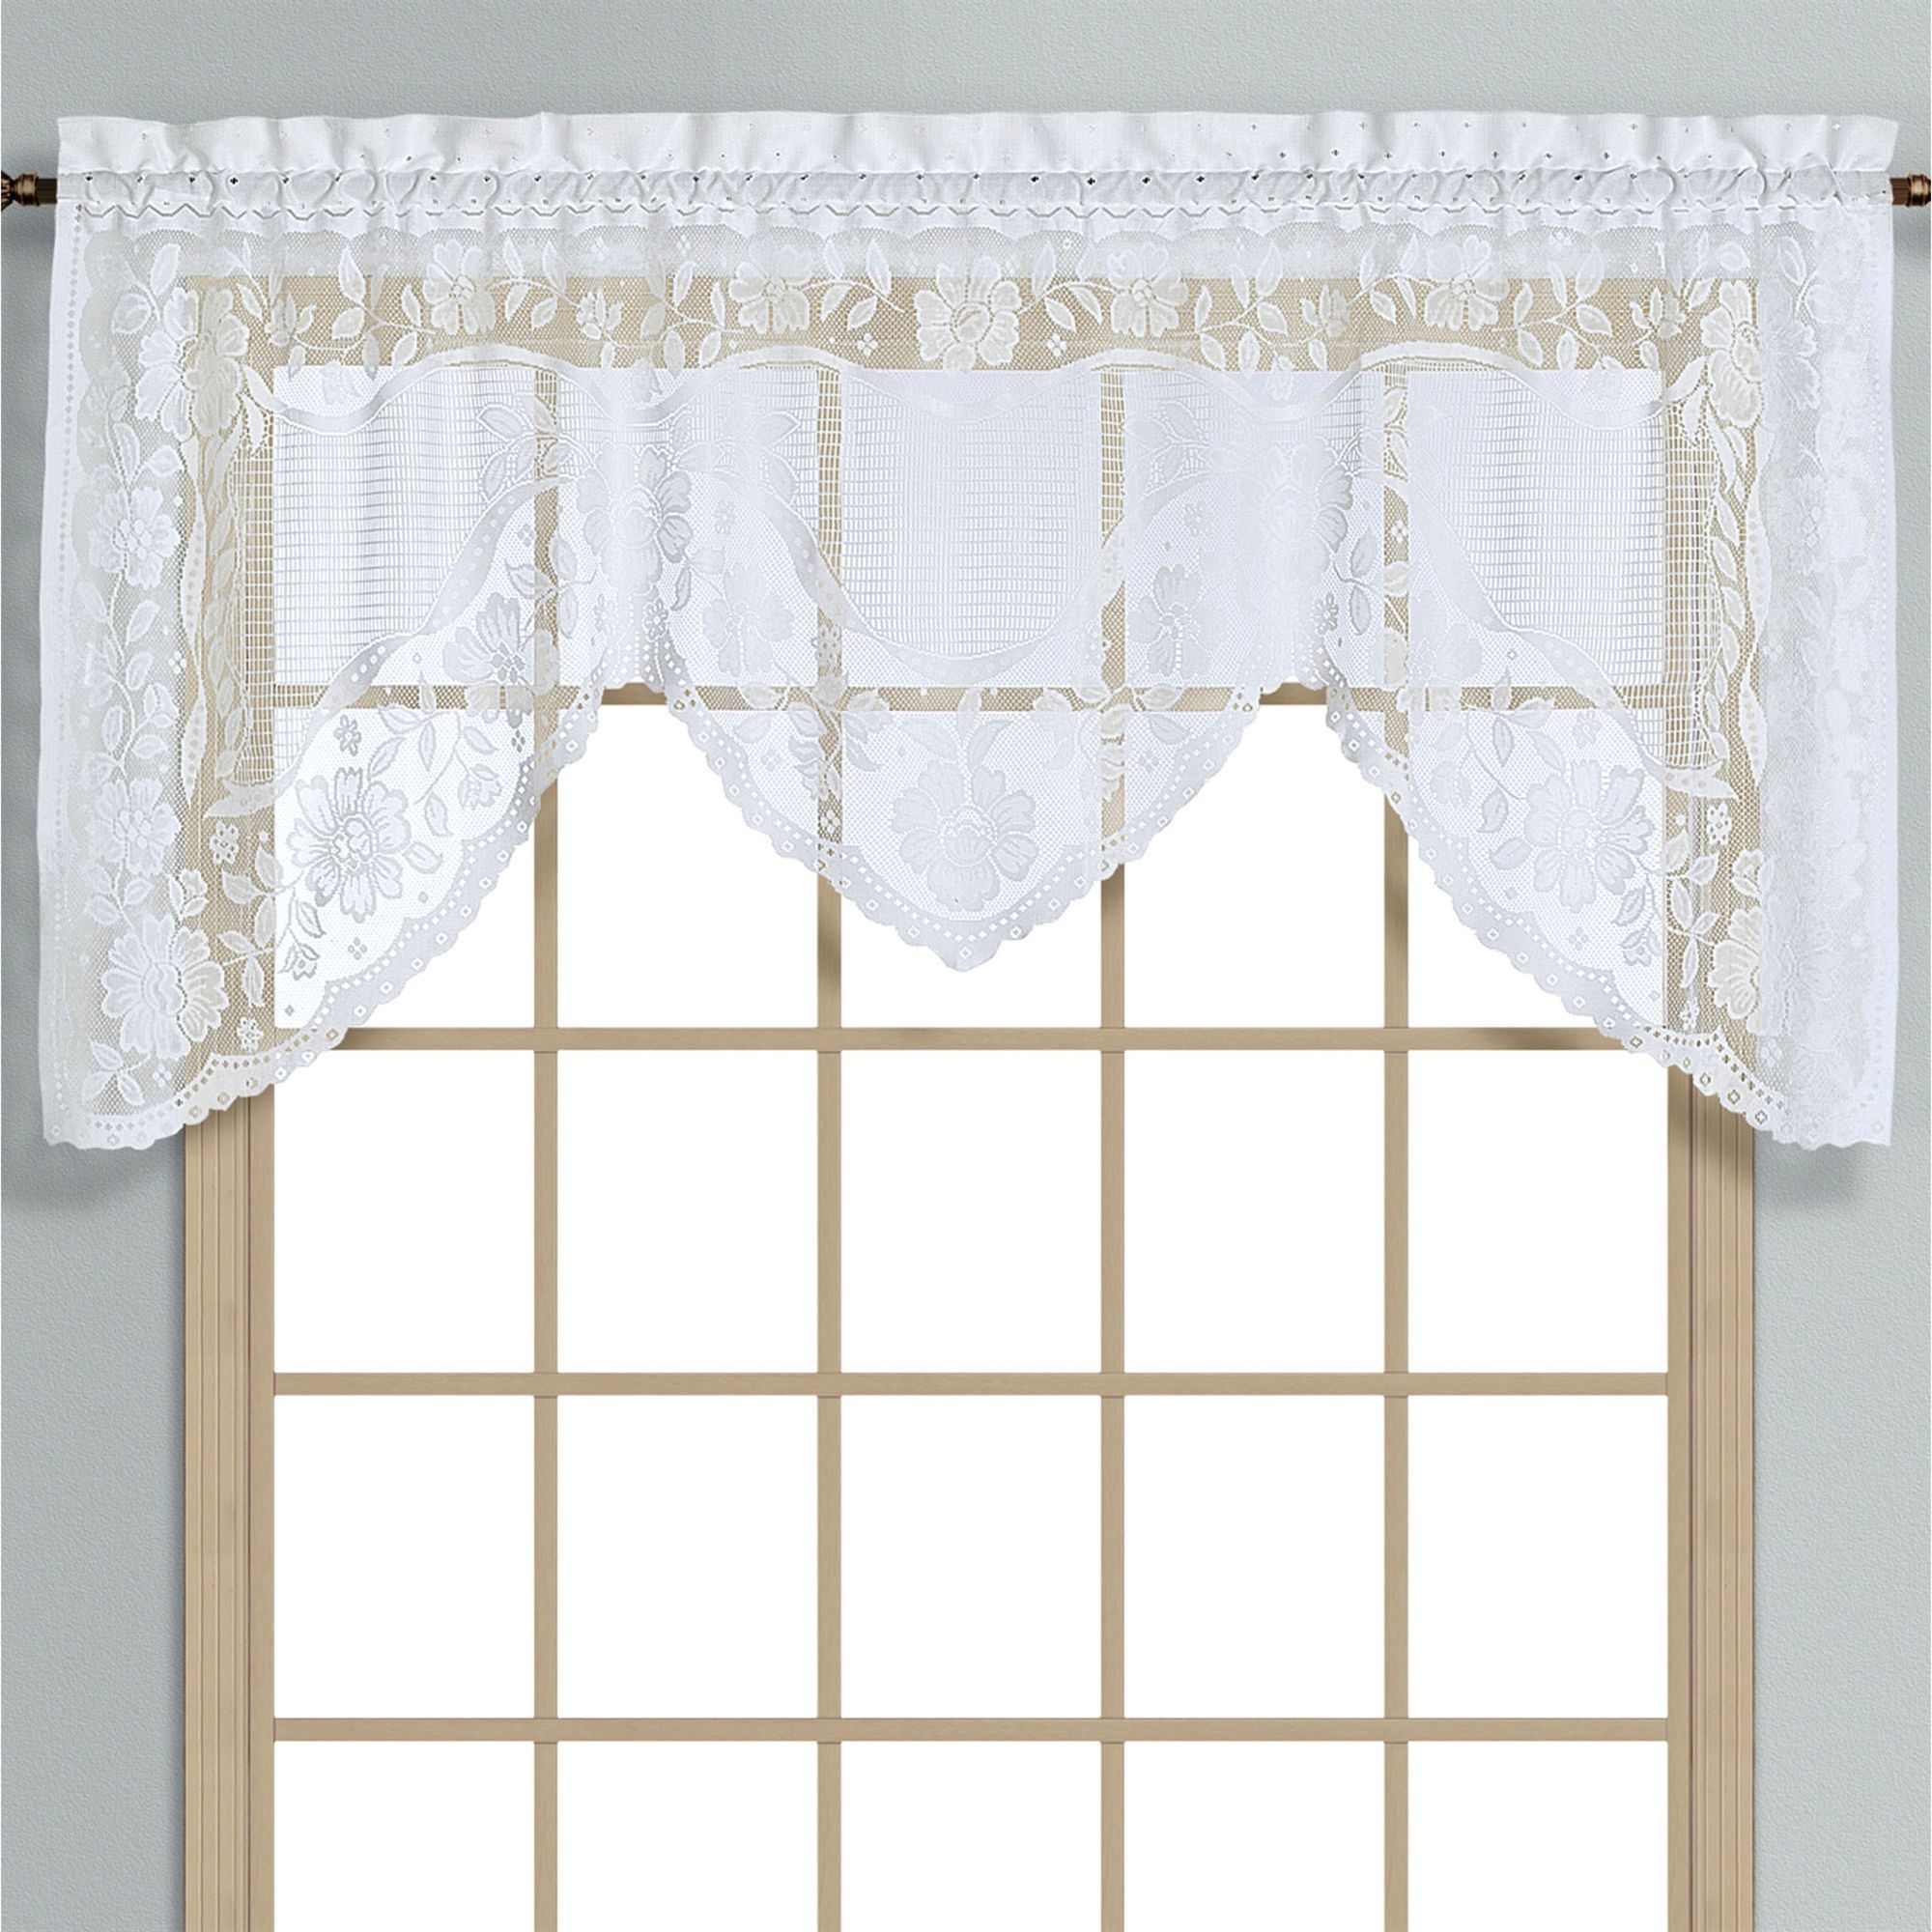 grapes pair valances window windows treatment tier vineyard panel valance for swag p lace